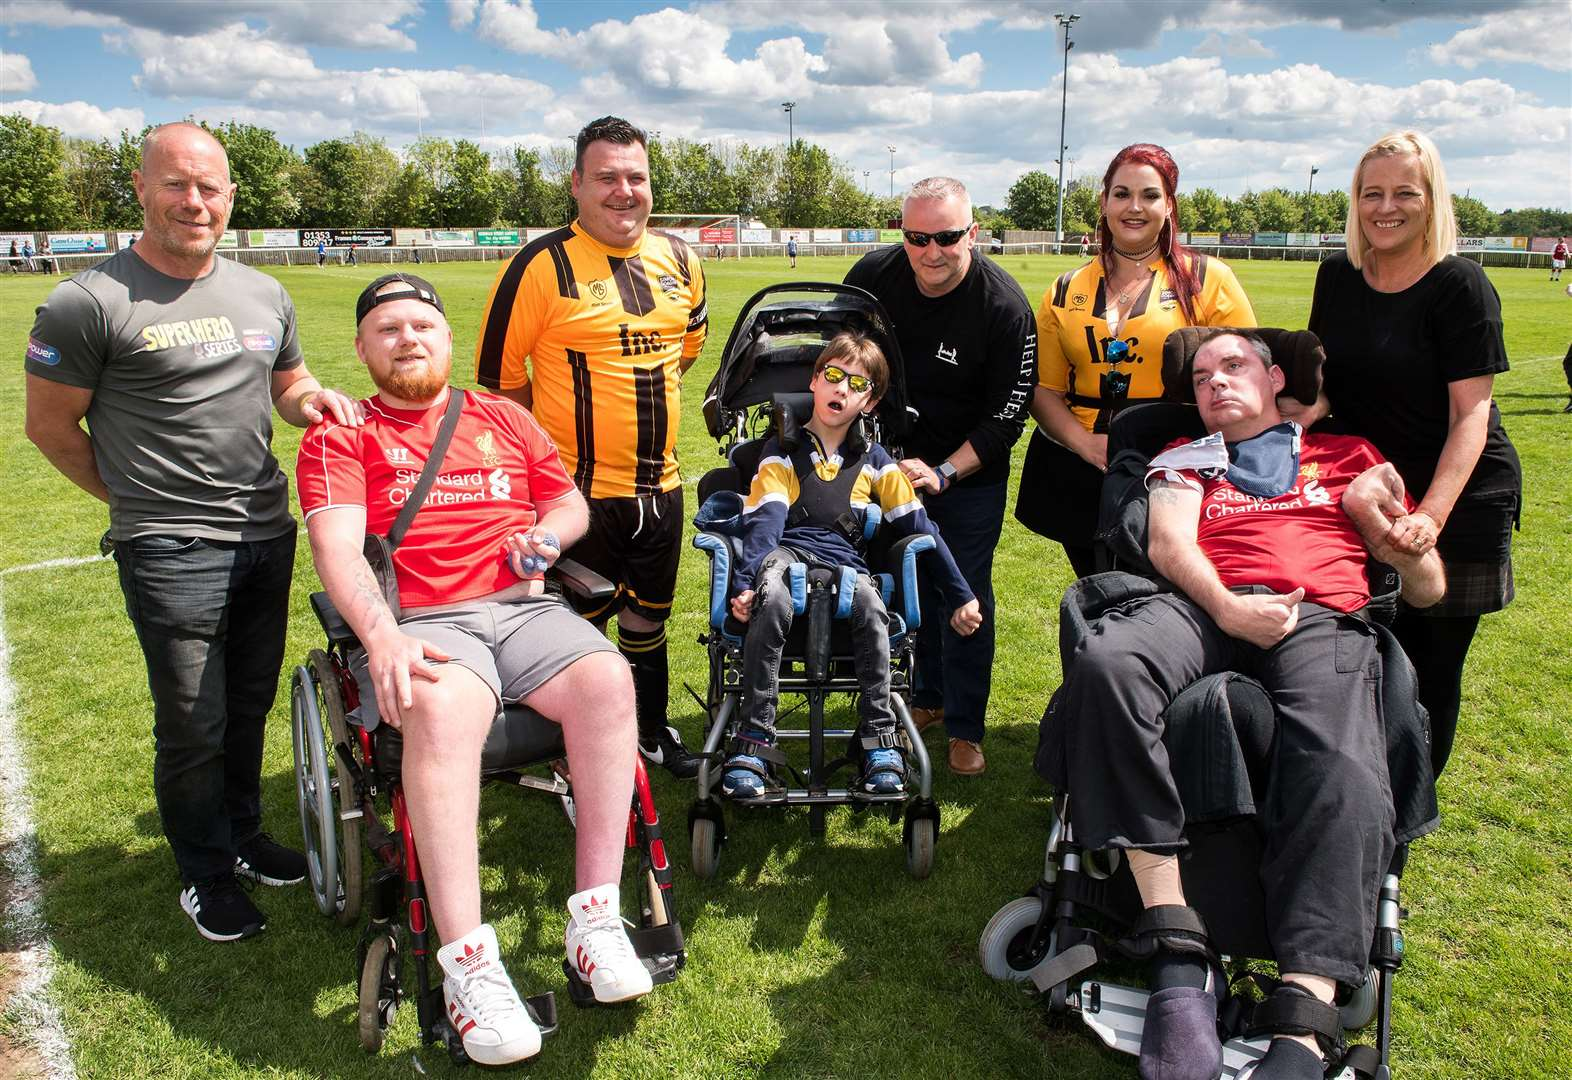 Charity match raises £2,000 for Simon Dobbin and his supporters